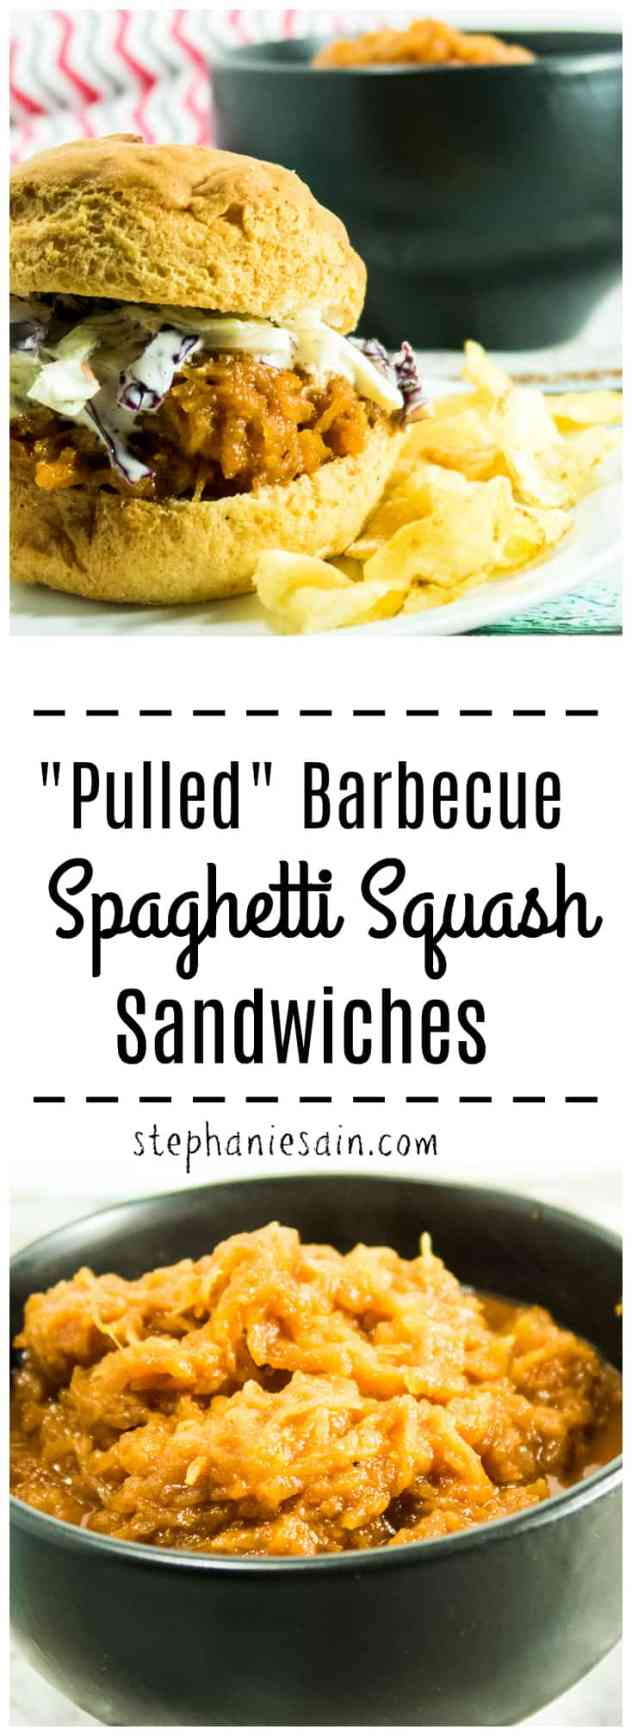 """""""Pulled"""" Barbecue Spaghetti Squash Sandwiches are a great vegetarian, vegan option for barbecue. Made with homemade BBQ sauce and topped with crunchy coleslaw. The perfect addition for a cookout or anytime. Gluten Free, Vegetarian, Vegan option."""